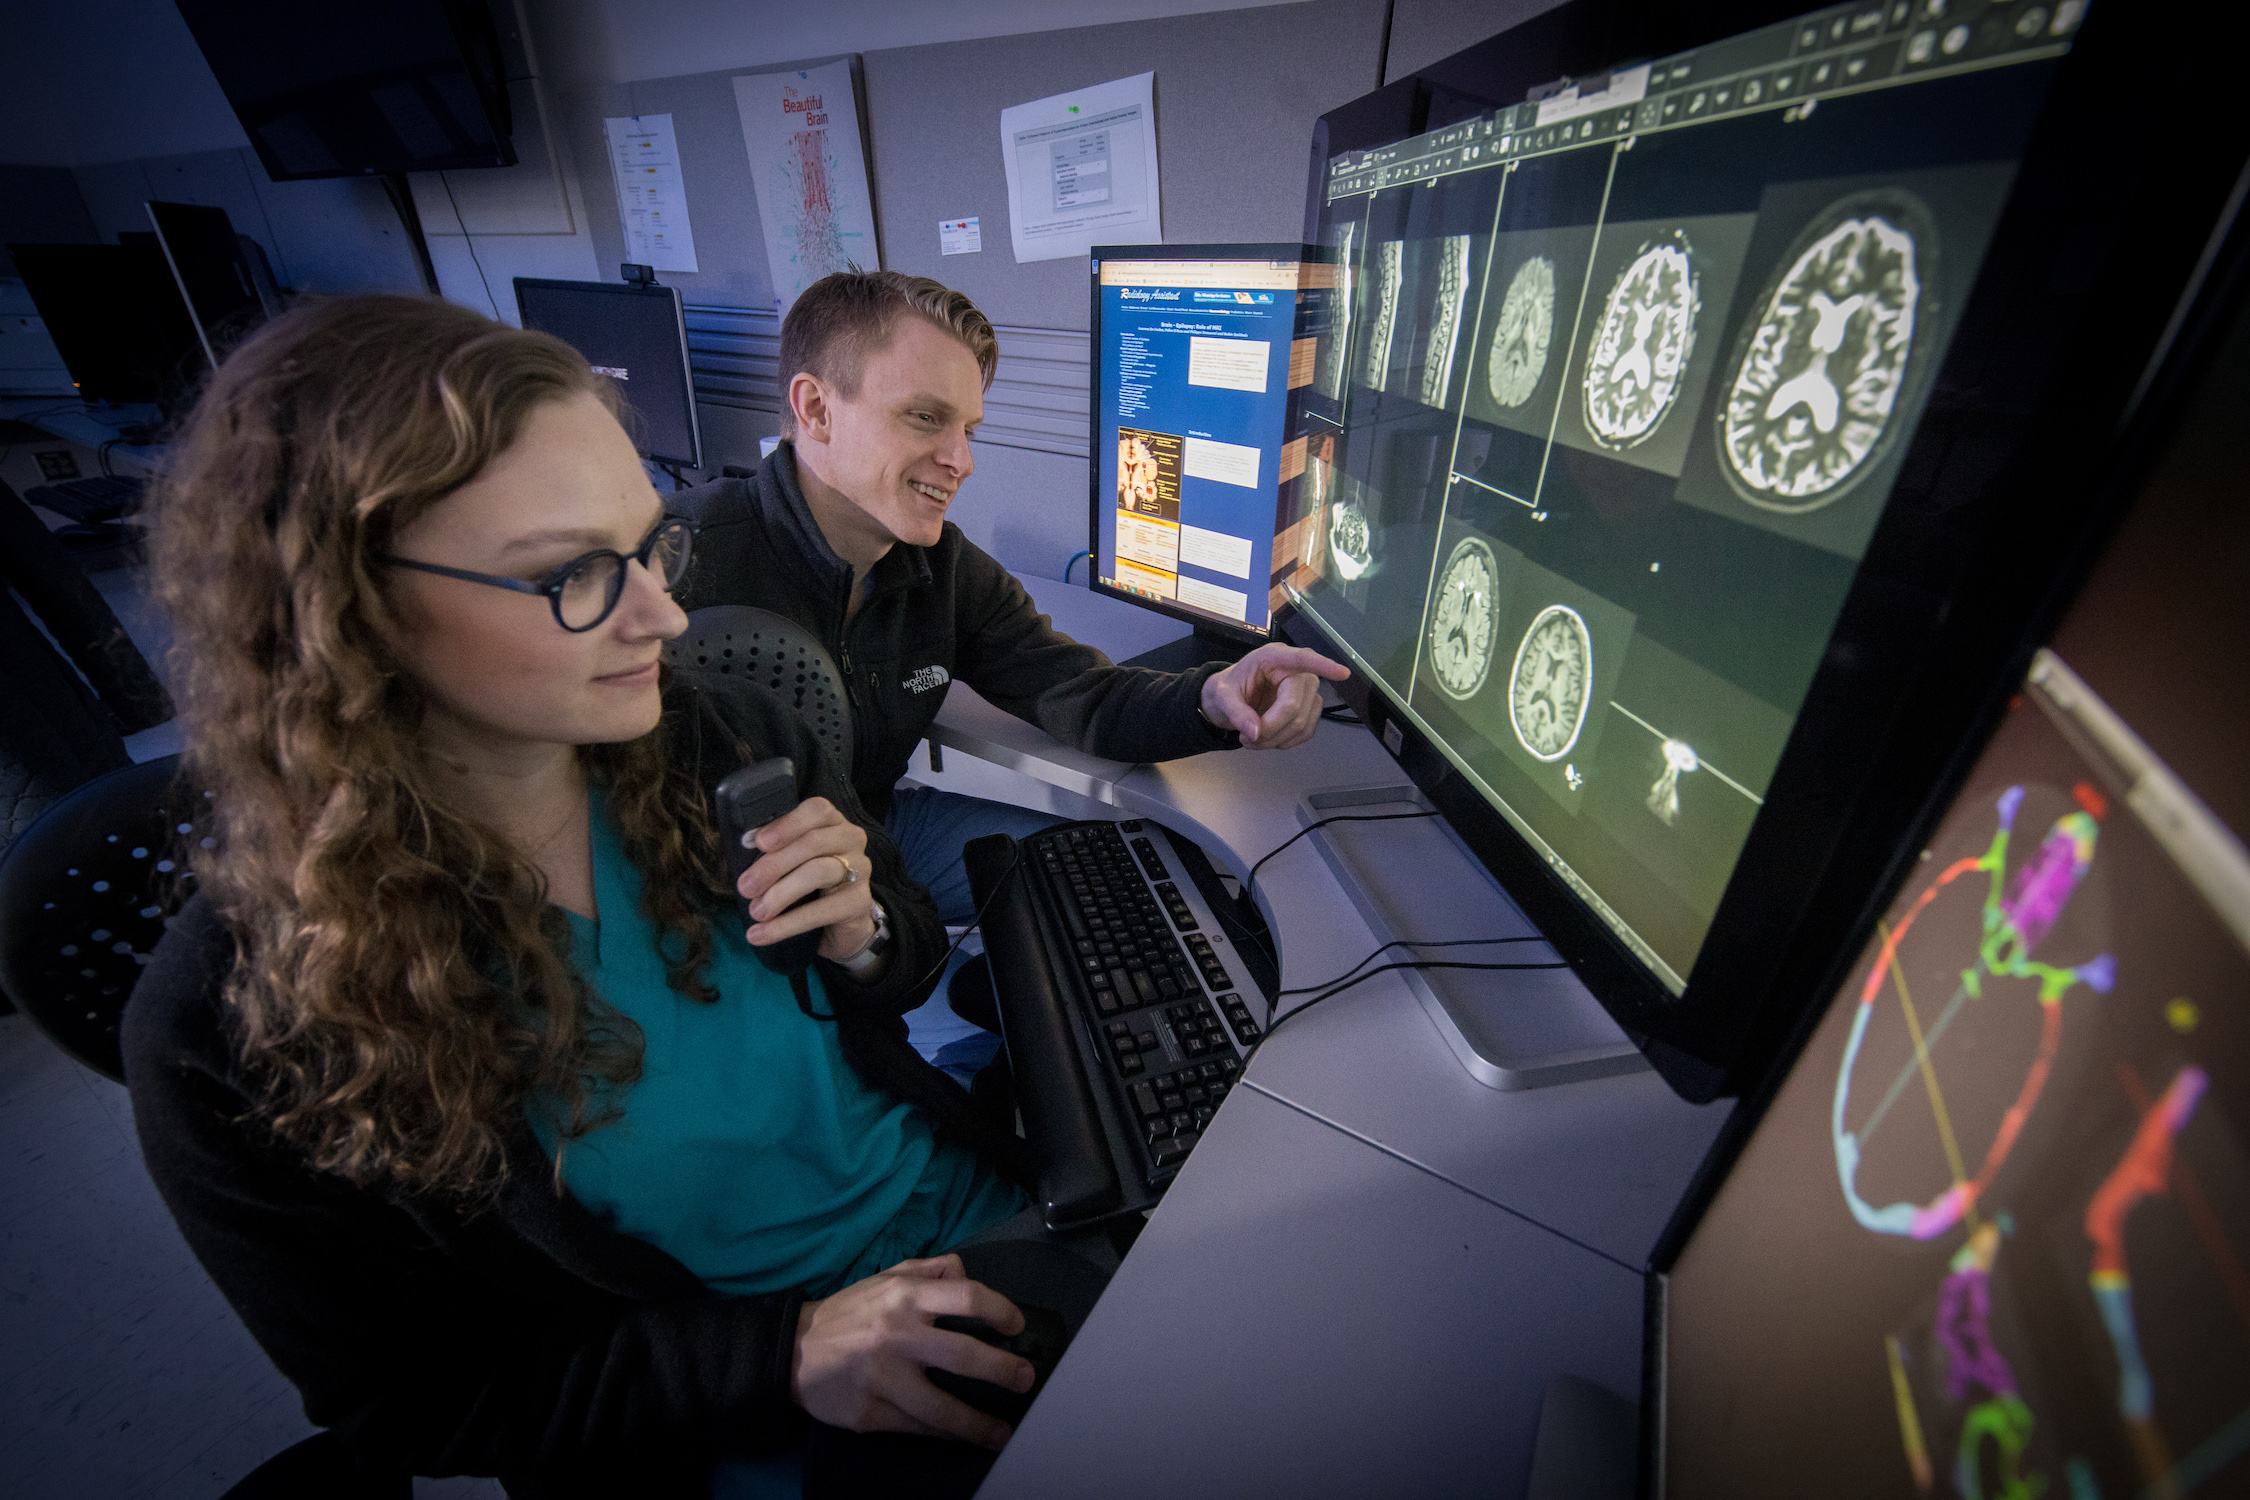 Radiologists working in diagnostic reading room